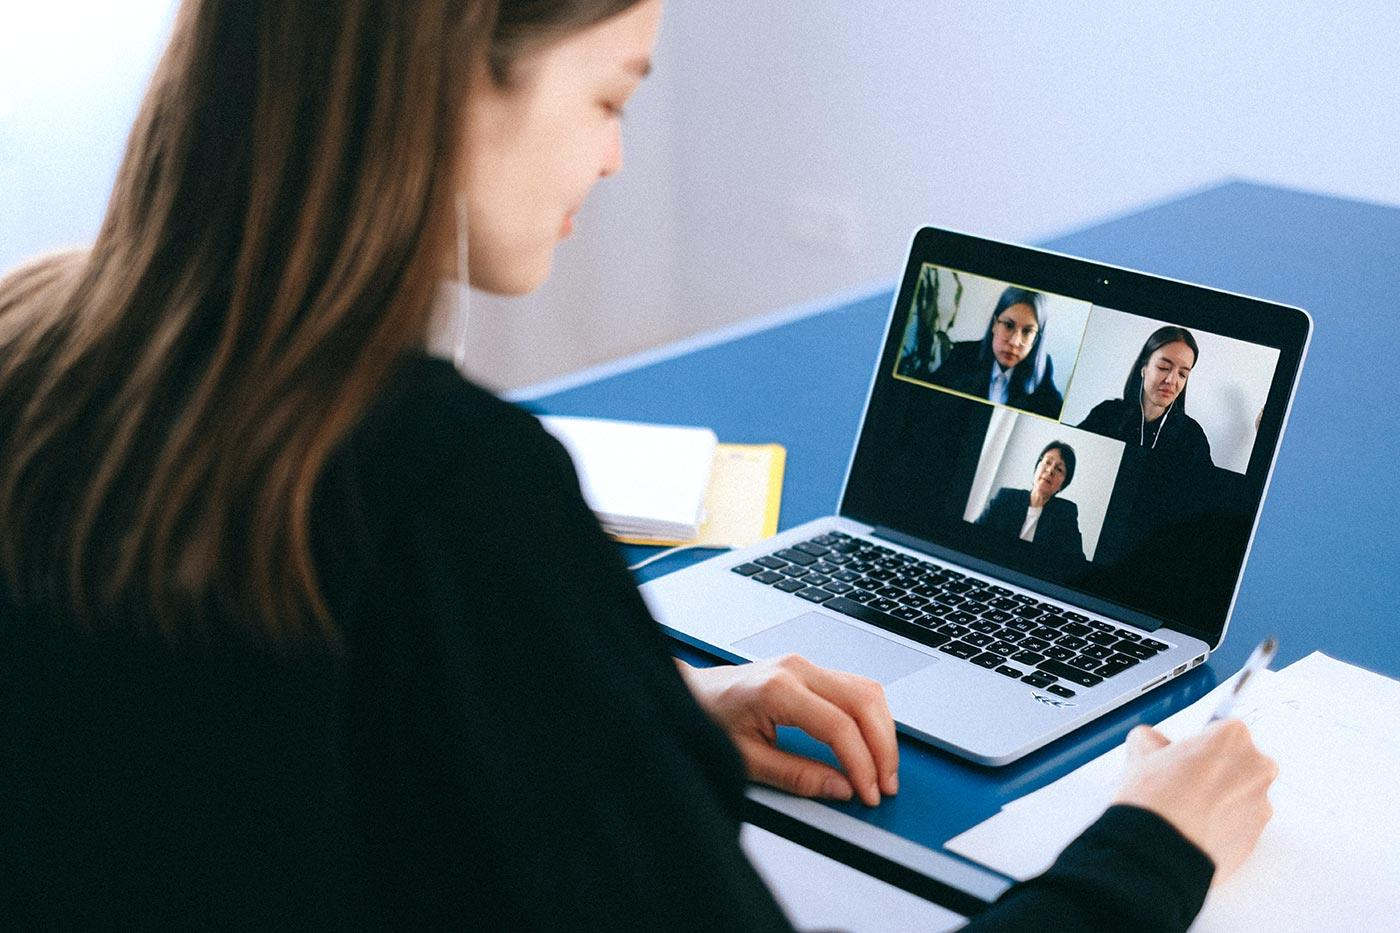 woman works on laptop for meeting over Zoom call